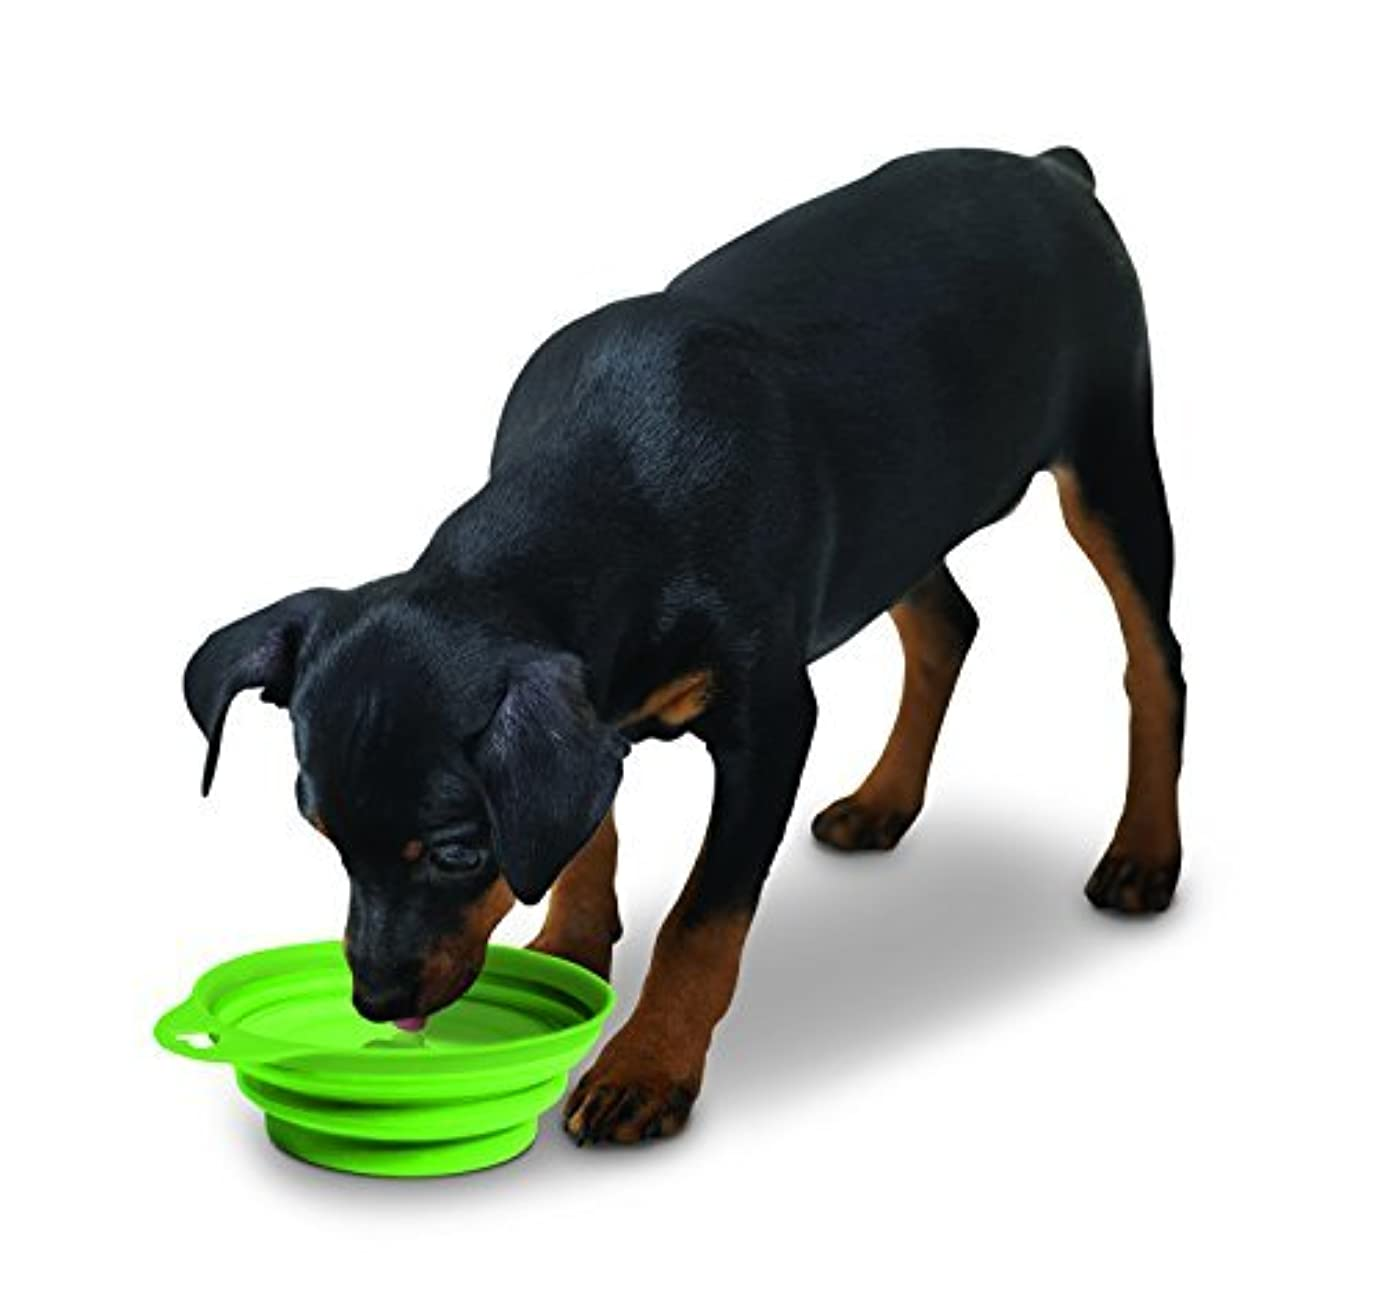 Large Collapsible Lightweight and Portable Pet Food & Water Bowl [並行輸入品]